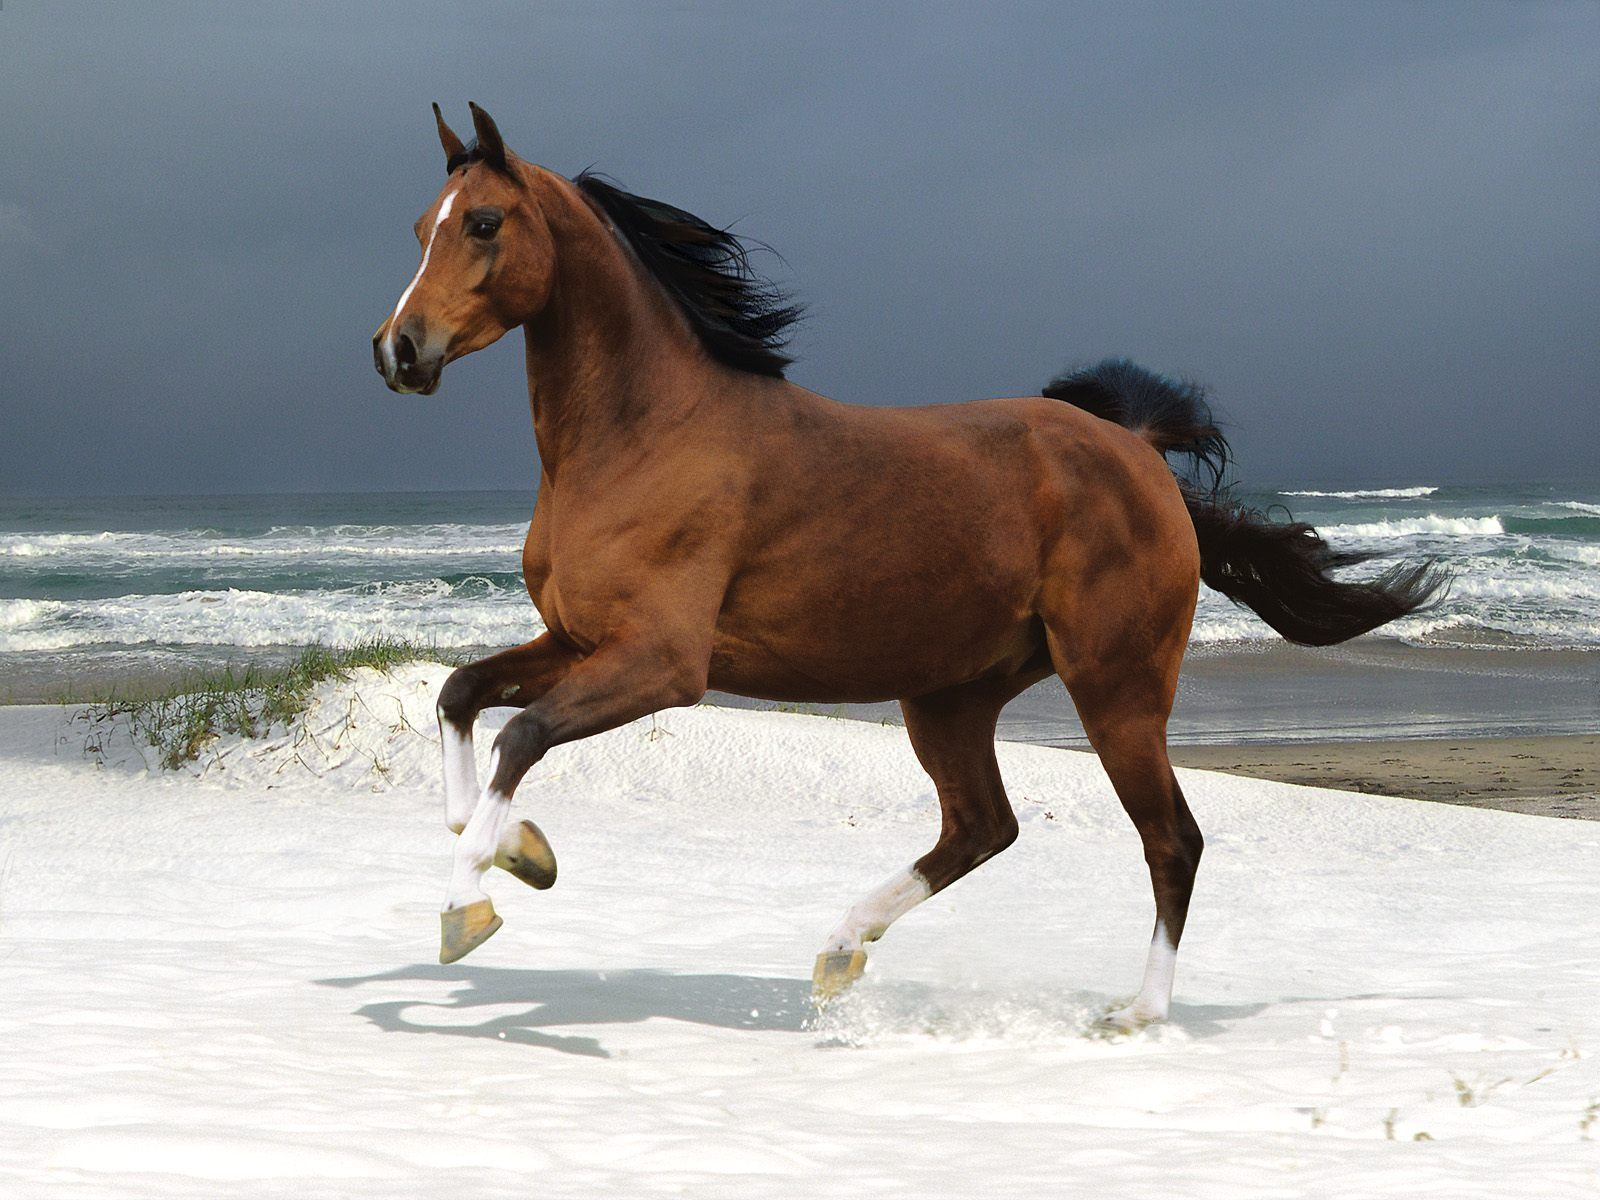 Beautiful Horse on a Beach 414.93 Kb